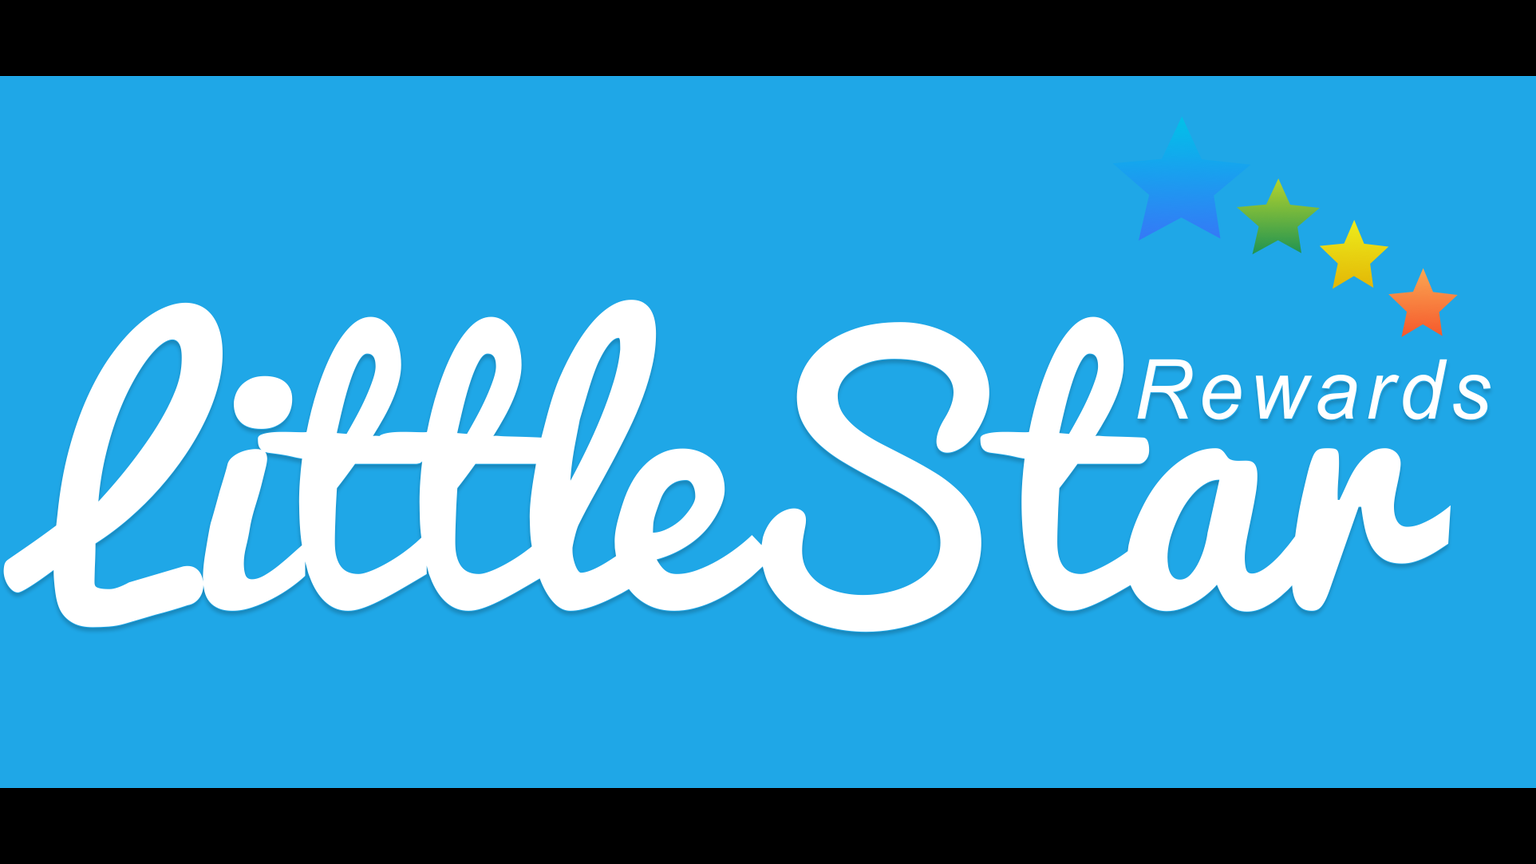 Circle K Rewards: Little Star Rewards By Sathish Iyer —Kickstarter